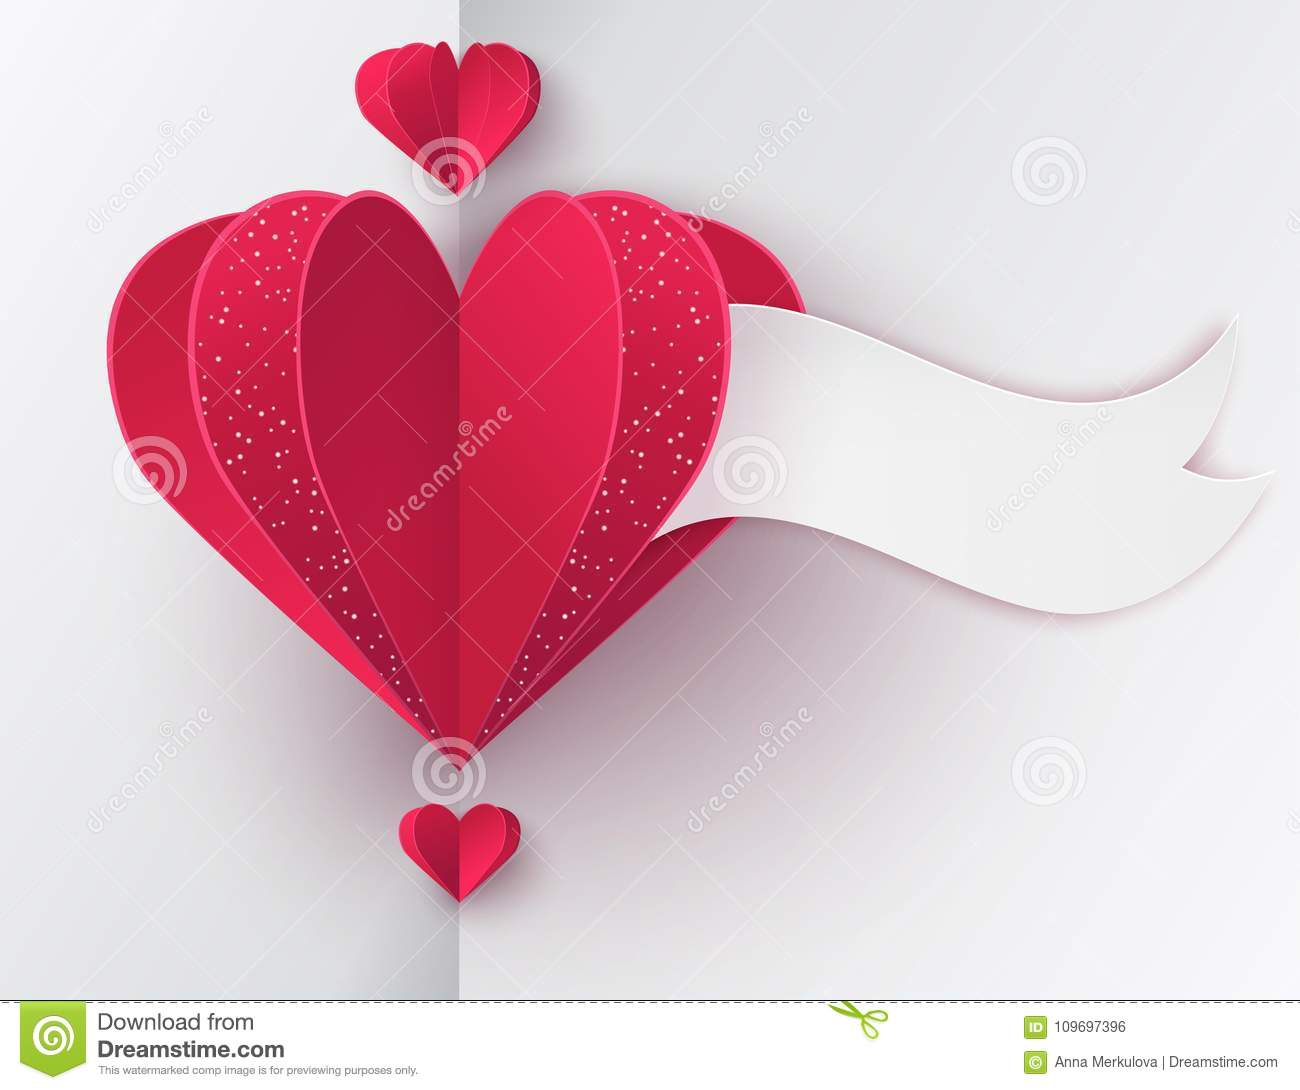 Modern Paper Art Backkground With Paper Folded Hearts Stock Vector ...